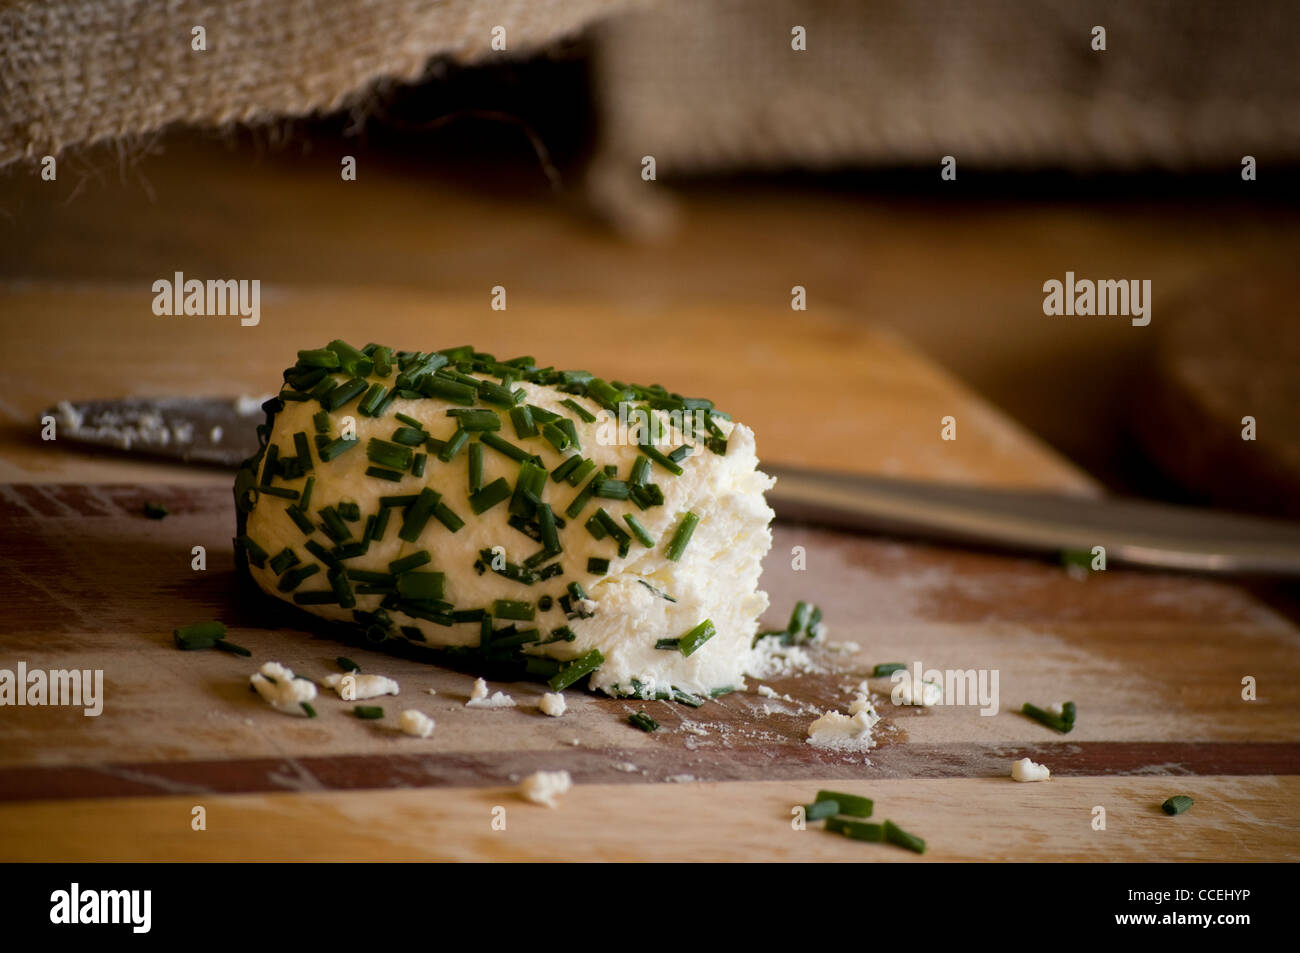 Chèvre Goat Cheese with Chives - Stock Image